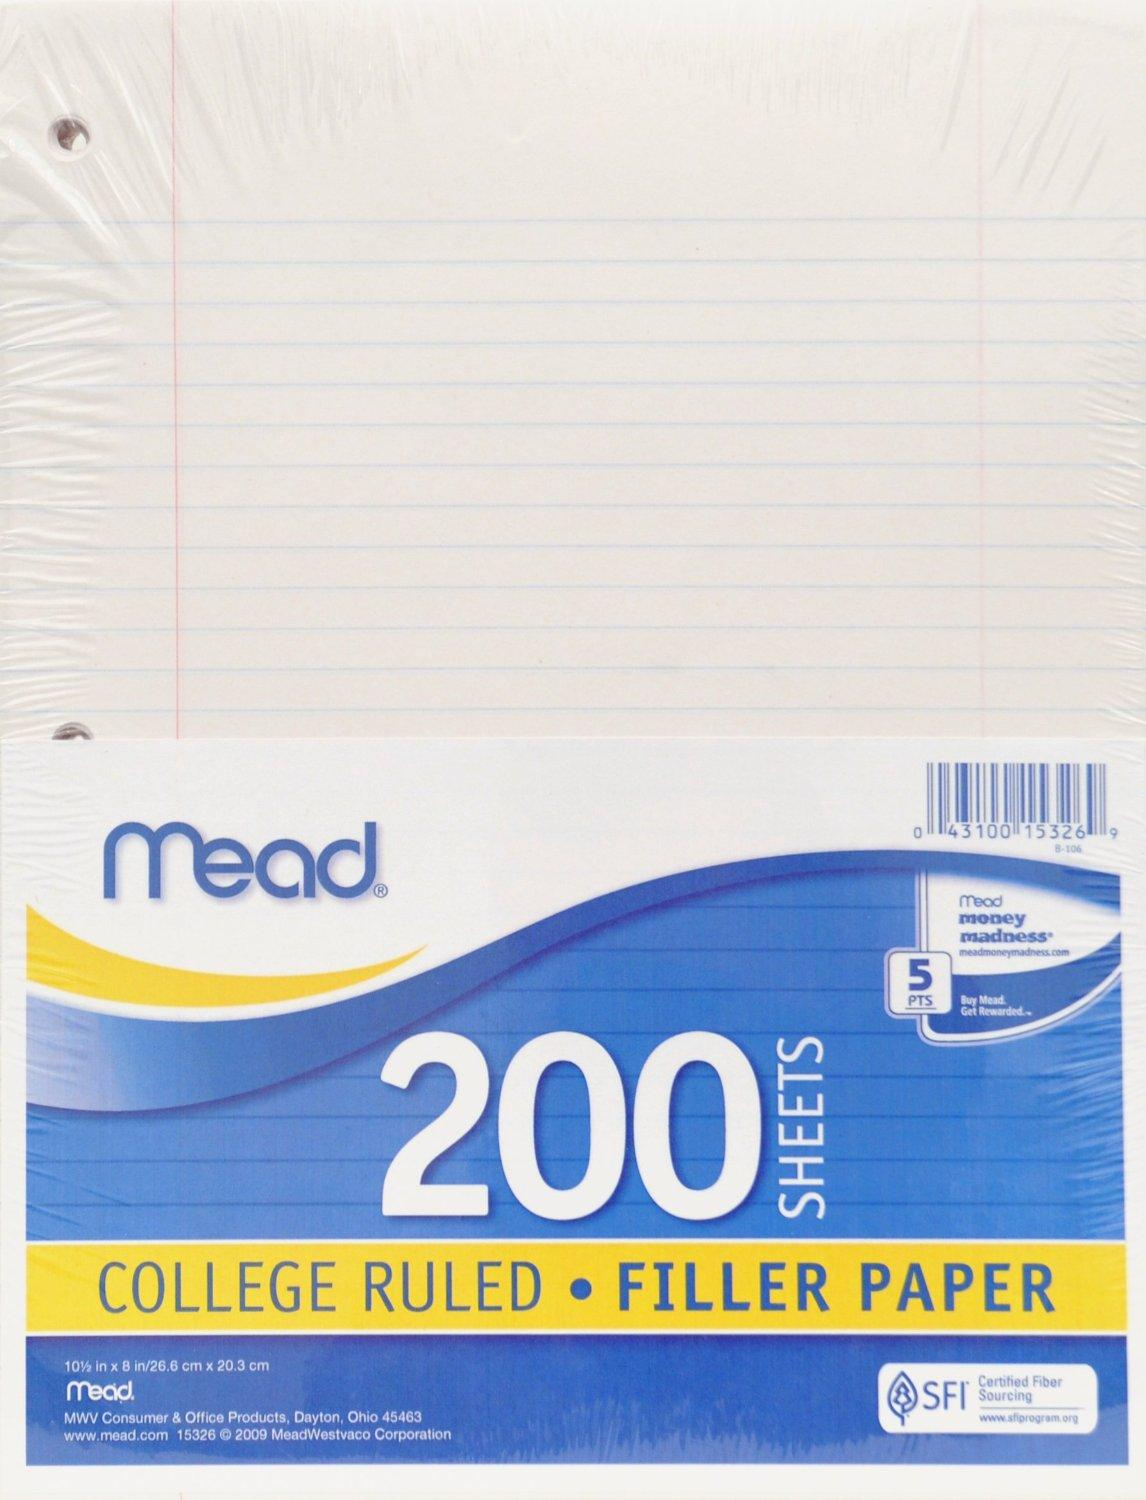 Mead Loose Leaf Paper Filler College Ruled 200 Count